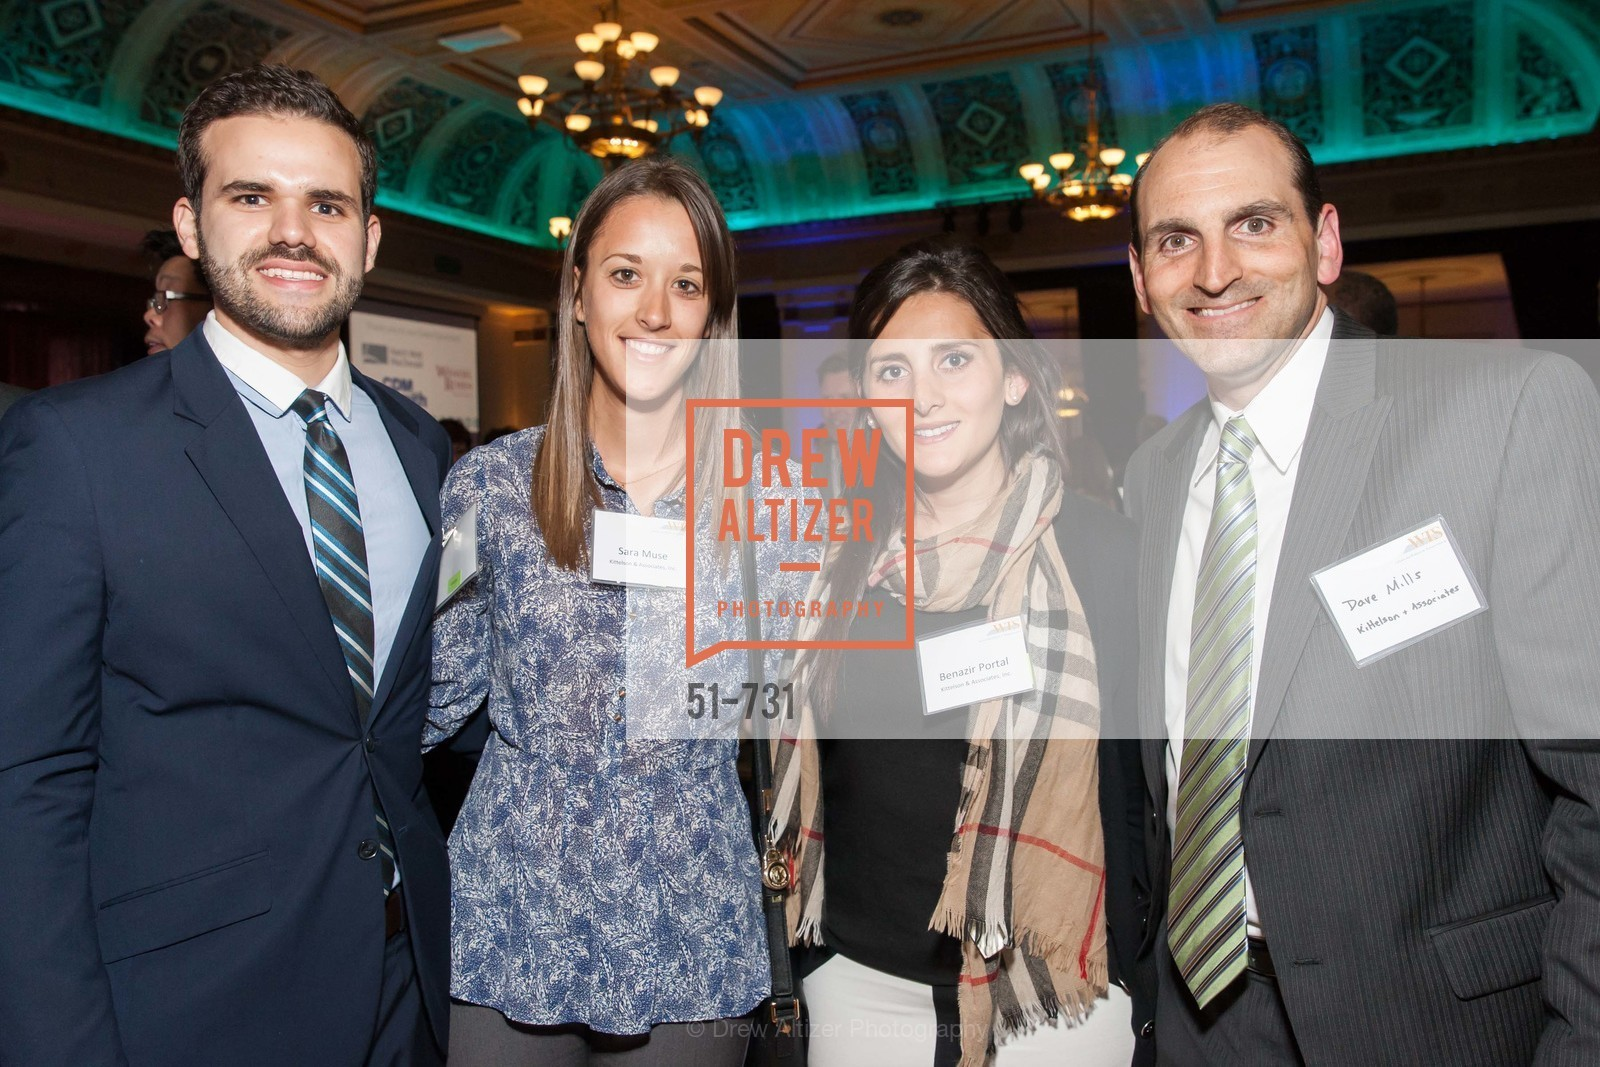 Jorge Barrios, Sara Muse, Benazir Portal, Dave Mills, WOMEN'S TRANSPORTATION SEMINAR SF Bay Area Chapter Annual Scholarship Awards, US, May 15th, 2015,Drew Altizer, Drew Altizer Photography, full-service agency, private events, San Francisco photographer, photographer california